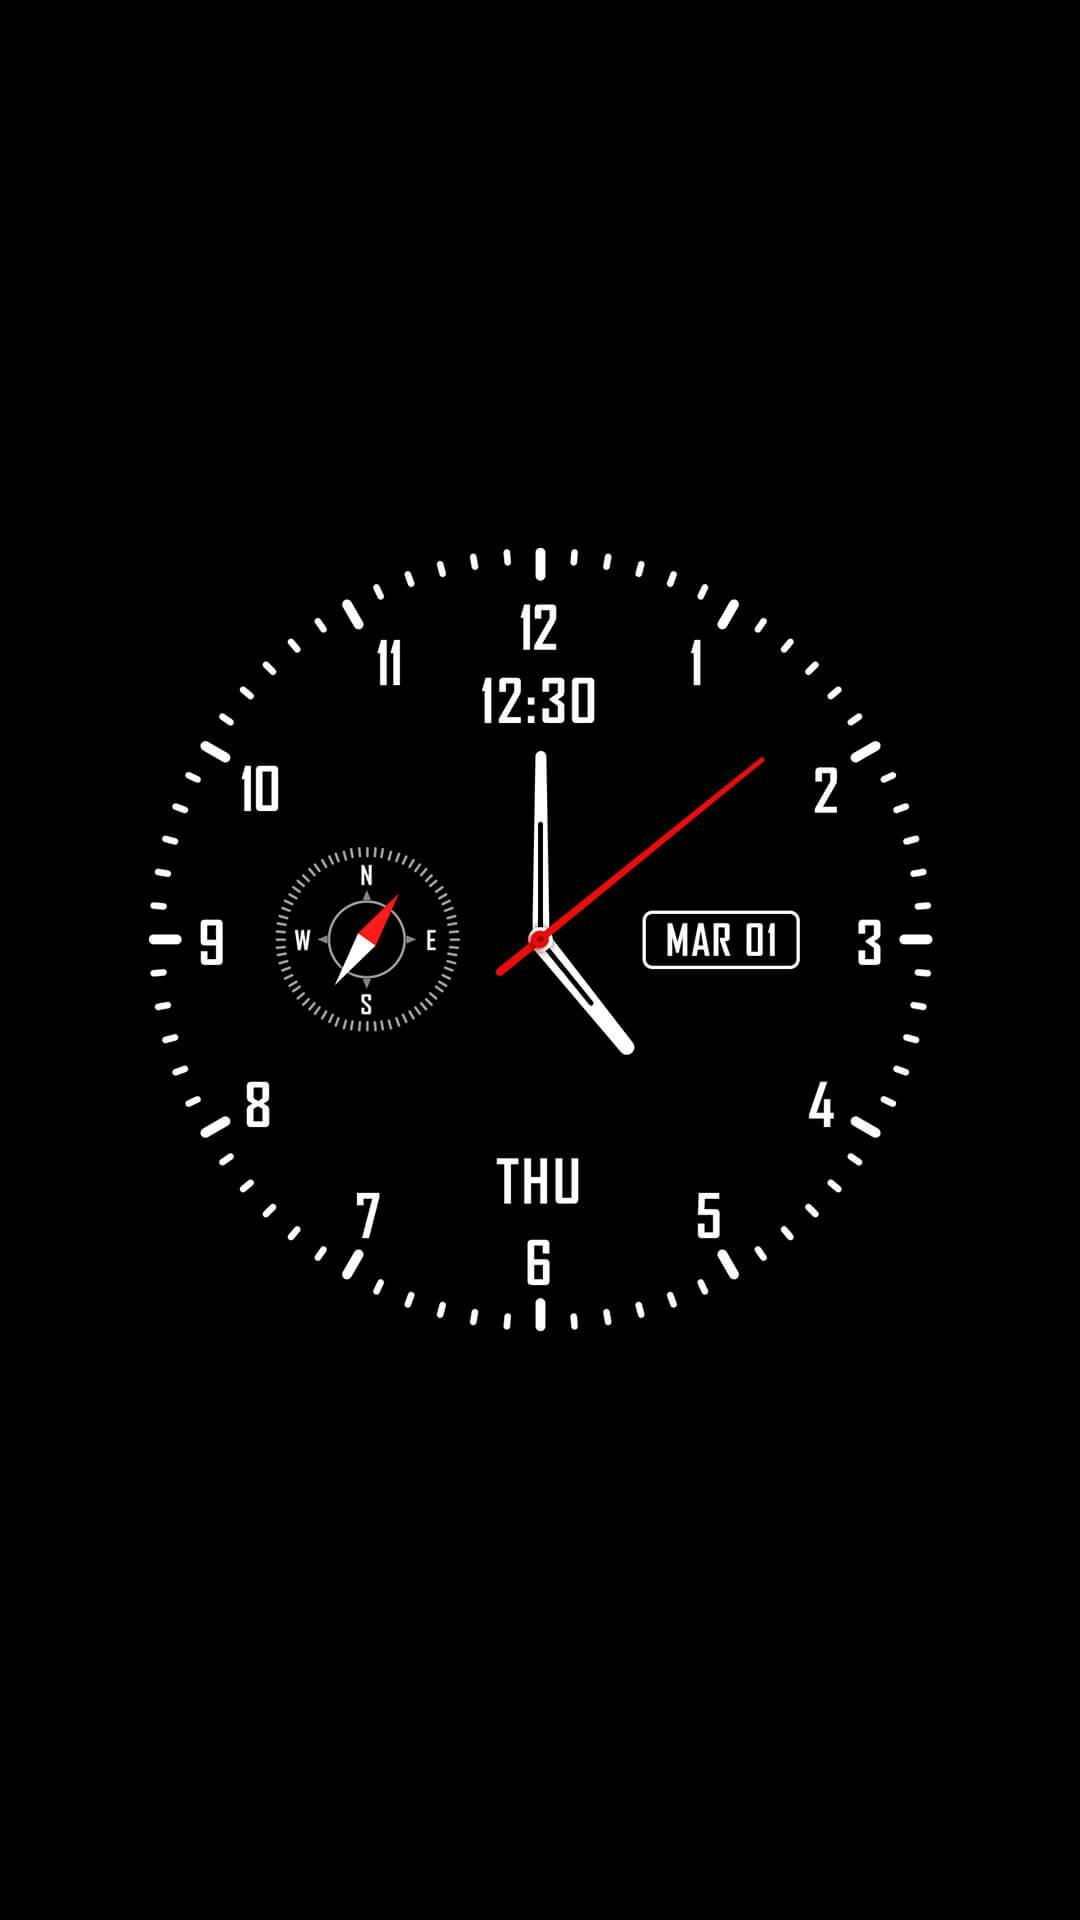 Analog clock & watch face live wallpaper for Android - APK Download